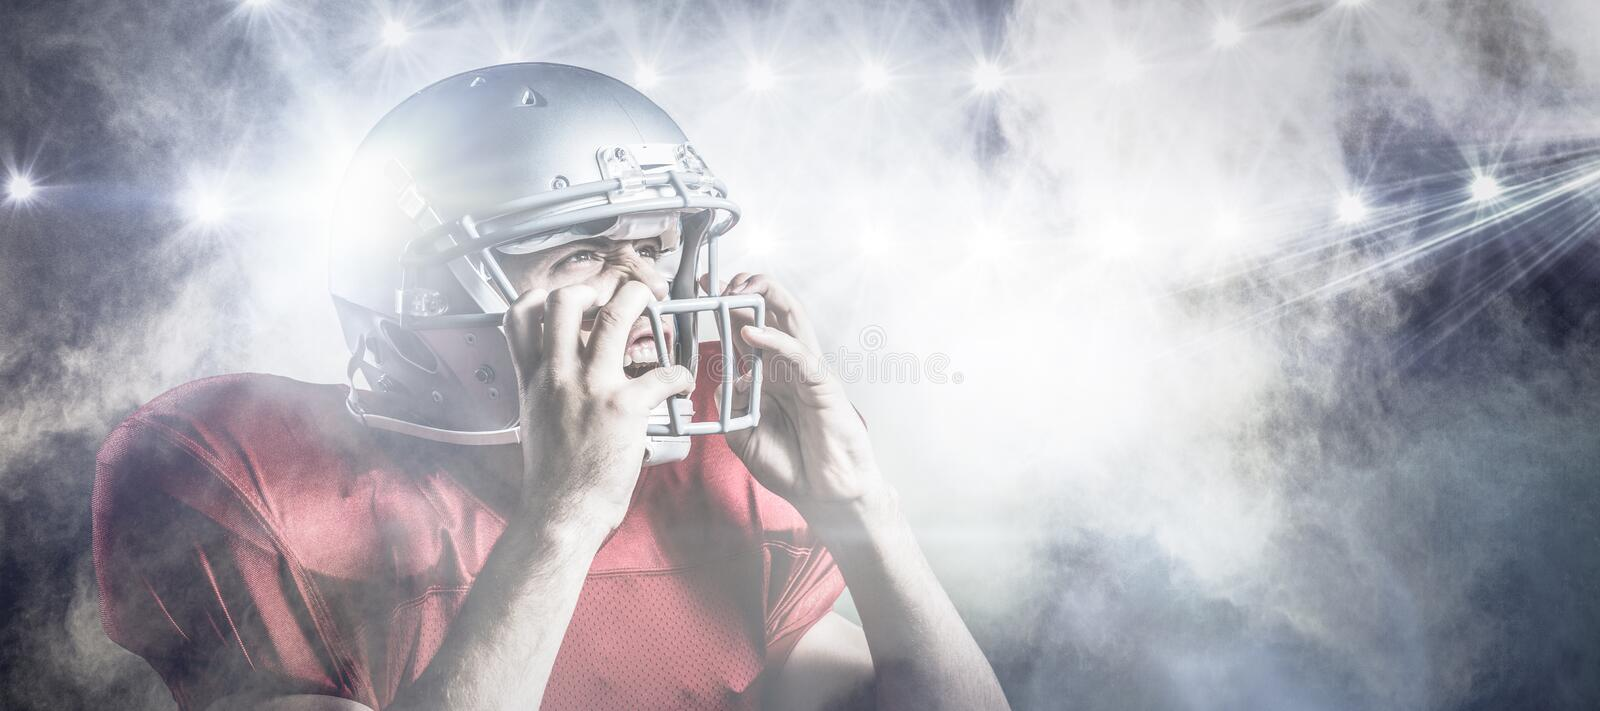 Composite image of aggressive american football player holding helmet royalty free stock photography